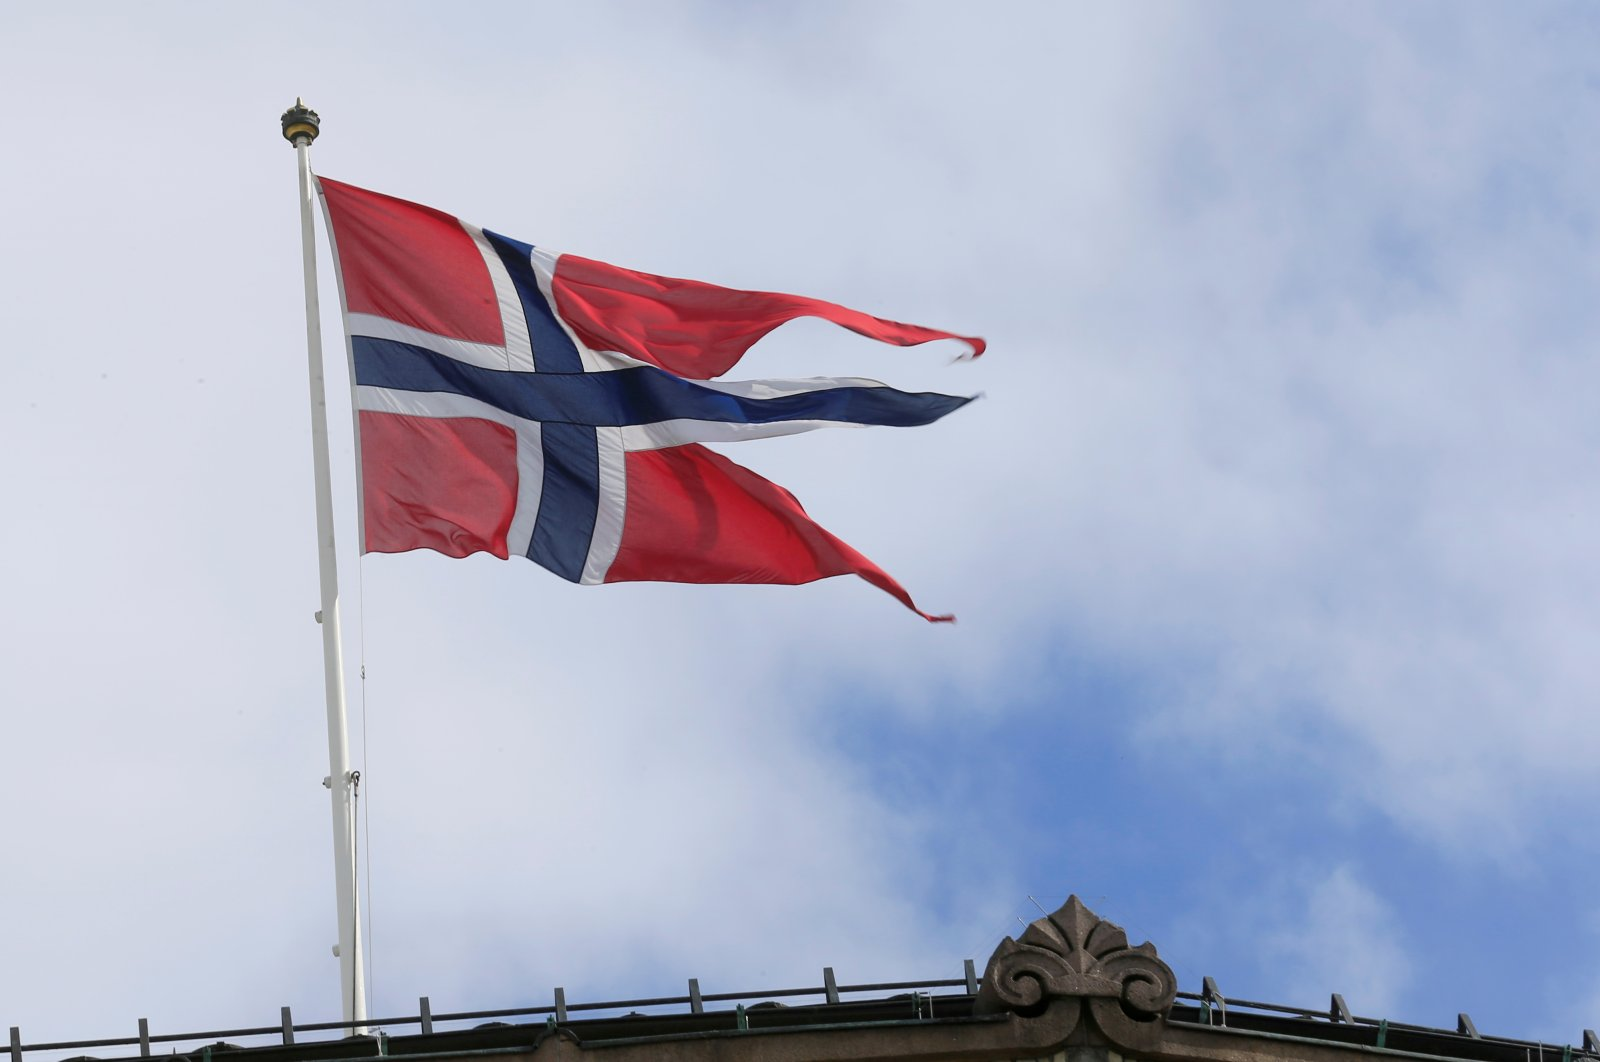 A Norwegian flag flutters over building in Oslo, Norway May 31, 2017. (REUTERS Photo)